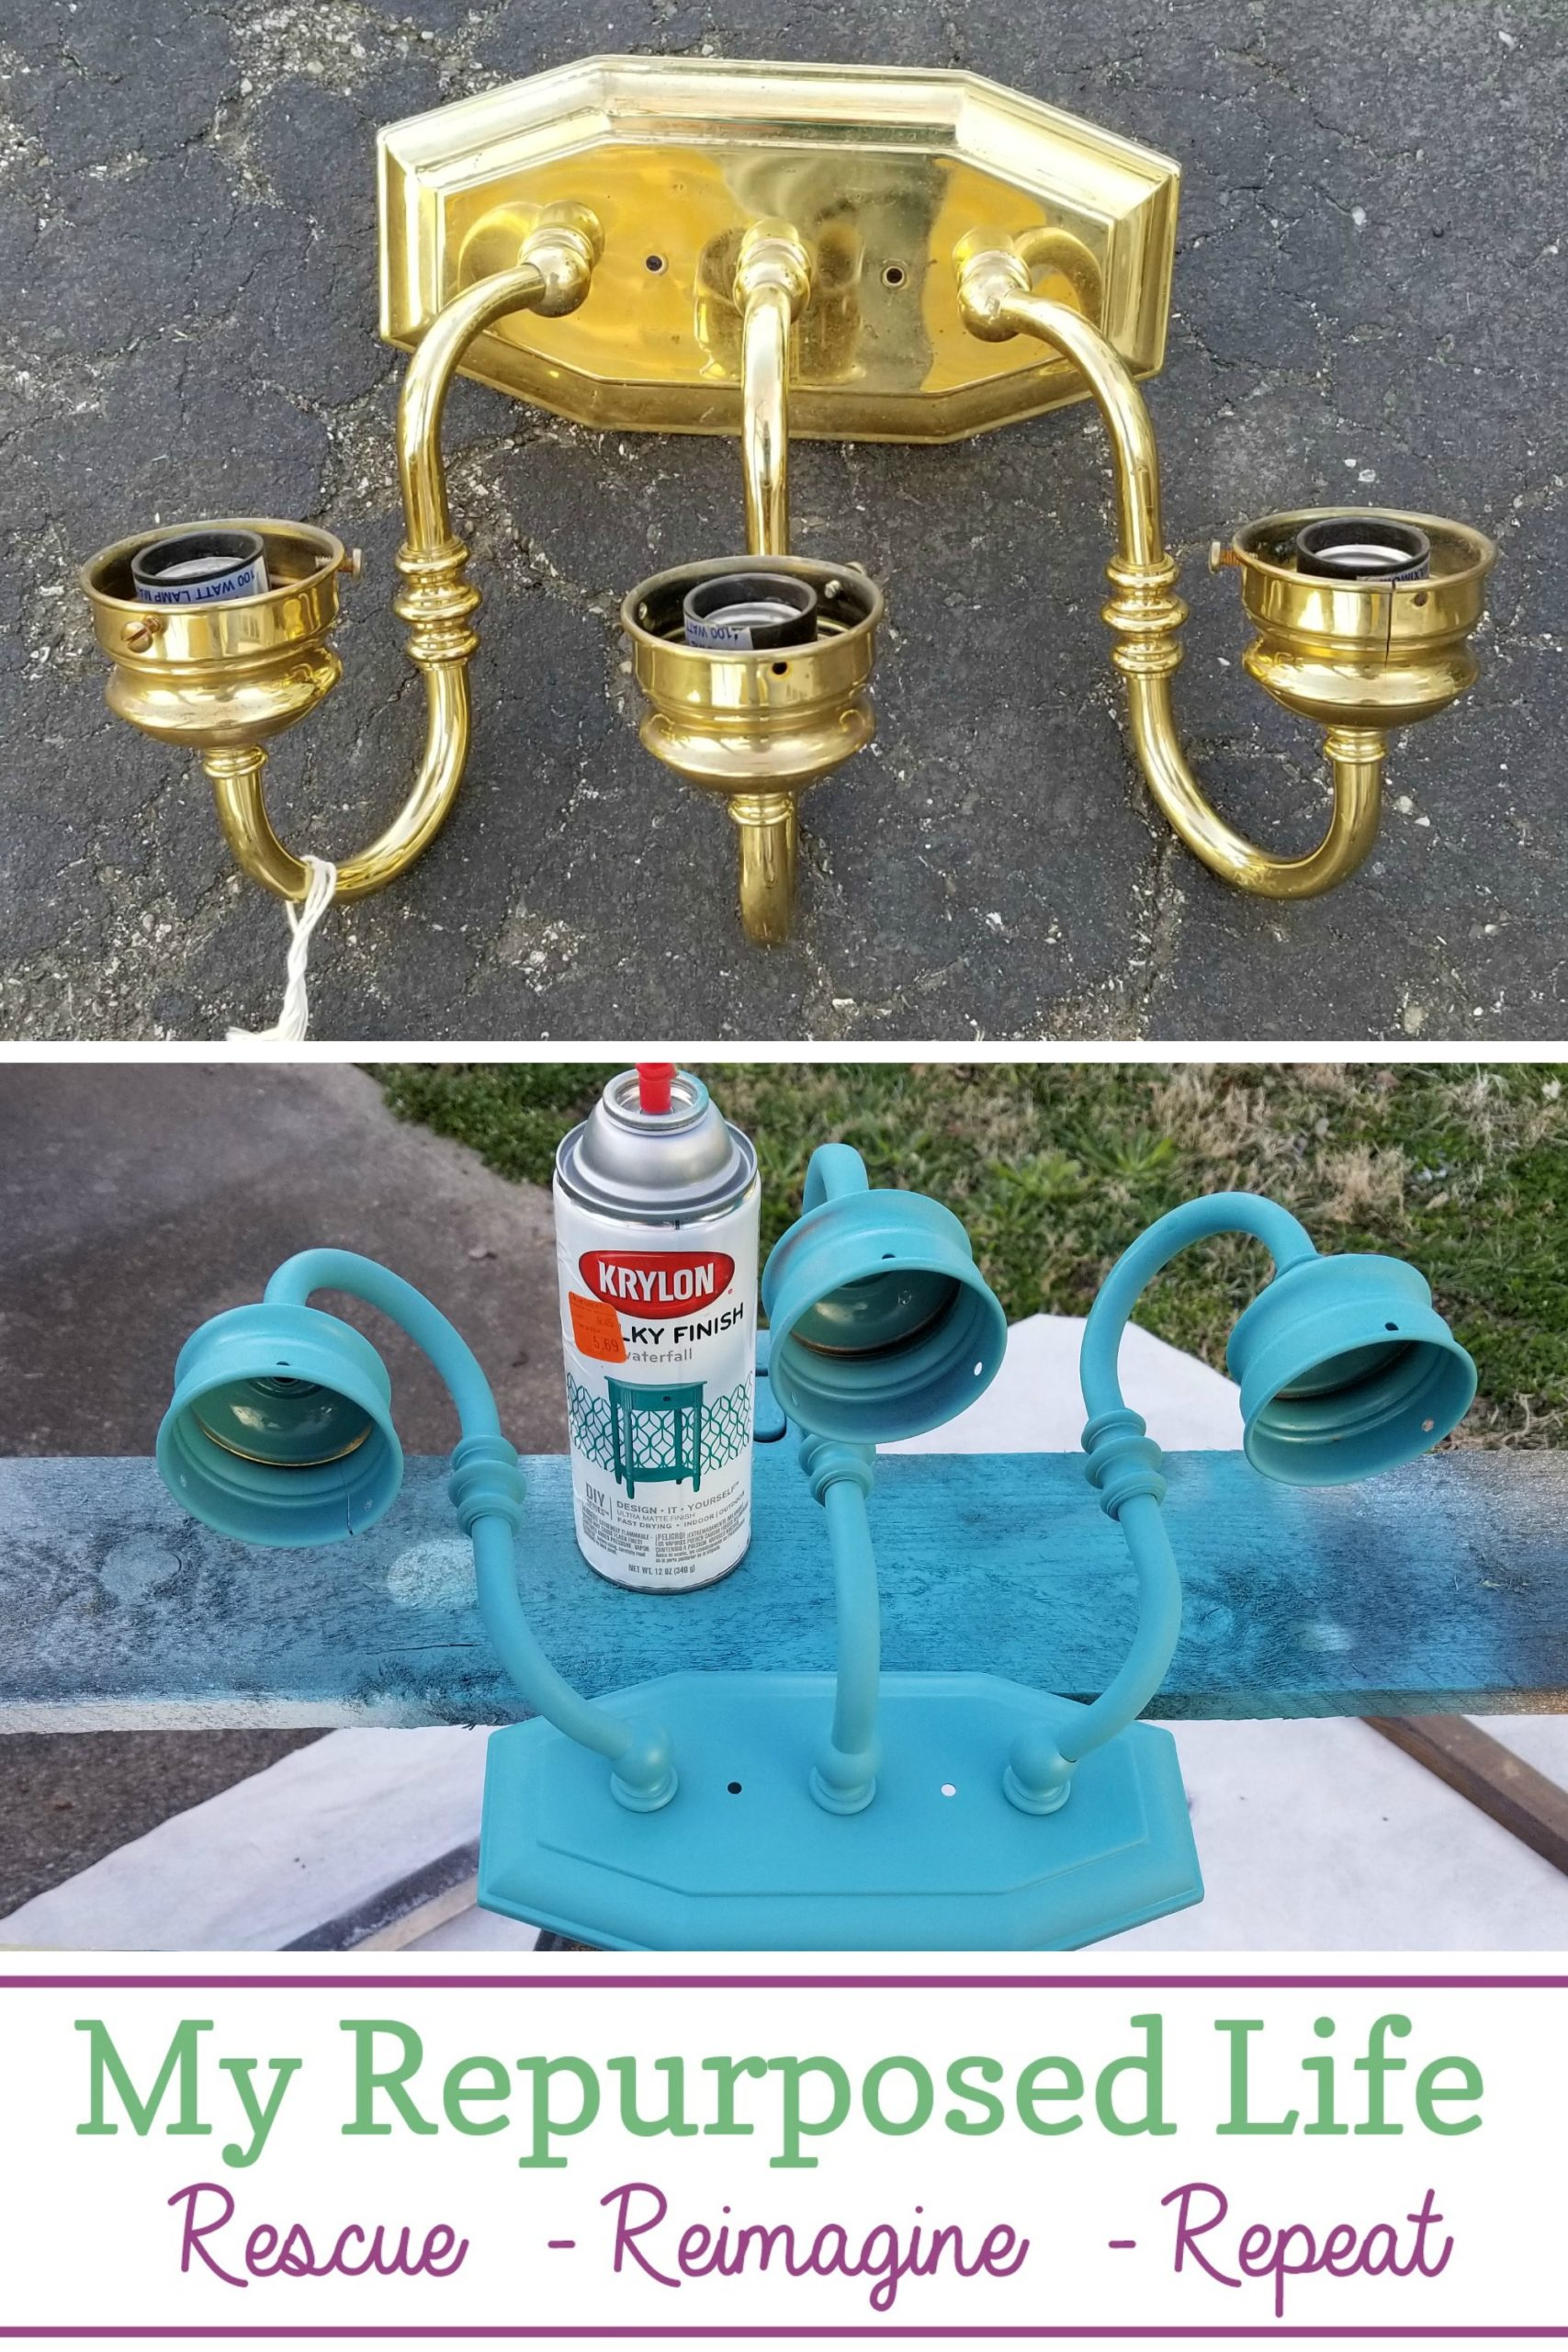 Thrifted brass vanity light gets a new look with spray paint. It even gets a new purpose as a solar light sconce for a backyard camper retreat. What a great way to add color and lighting. Choosing the right solar lights has proven to be a challenge, but I will win out in the end! #MyRepurposedLife #brass #light #repurposed #spraypaint #solar via @repurposedlife